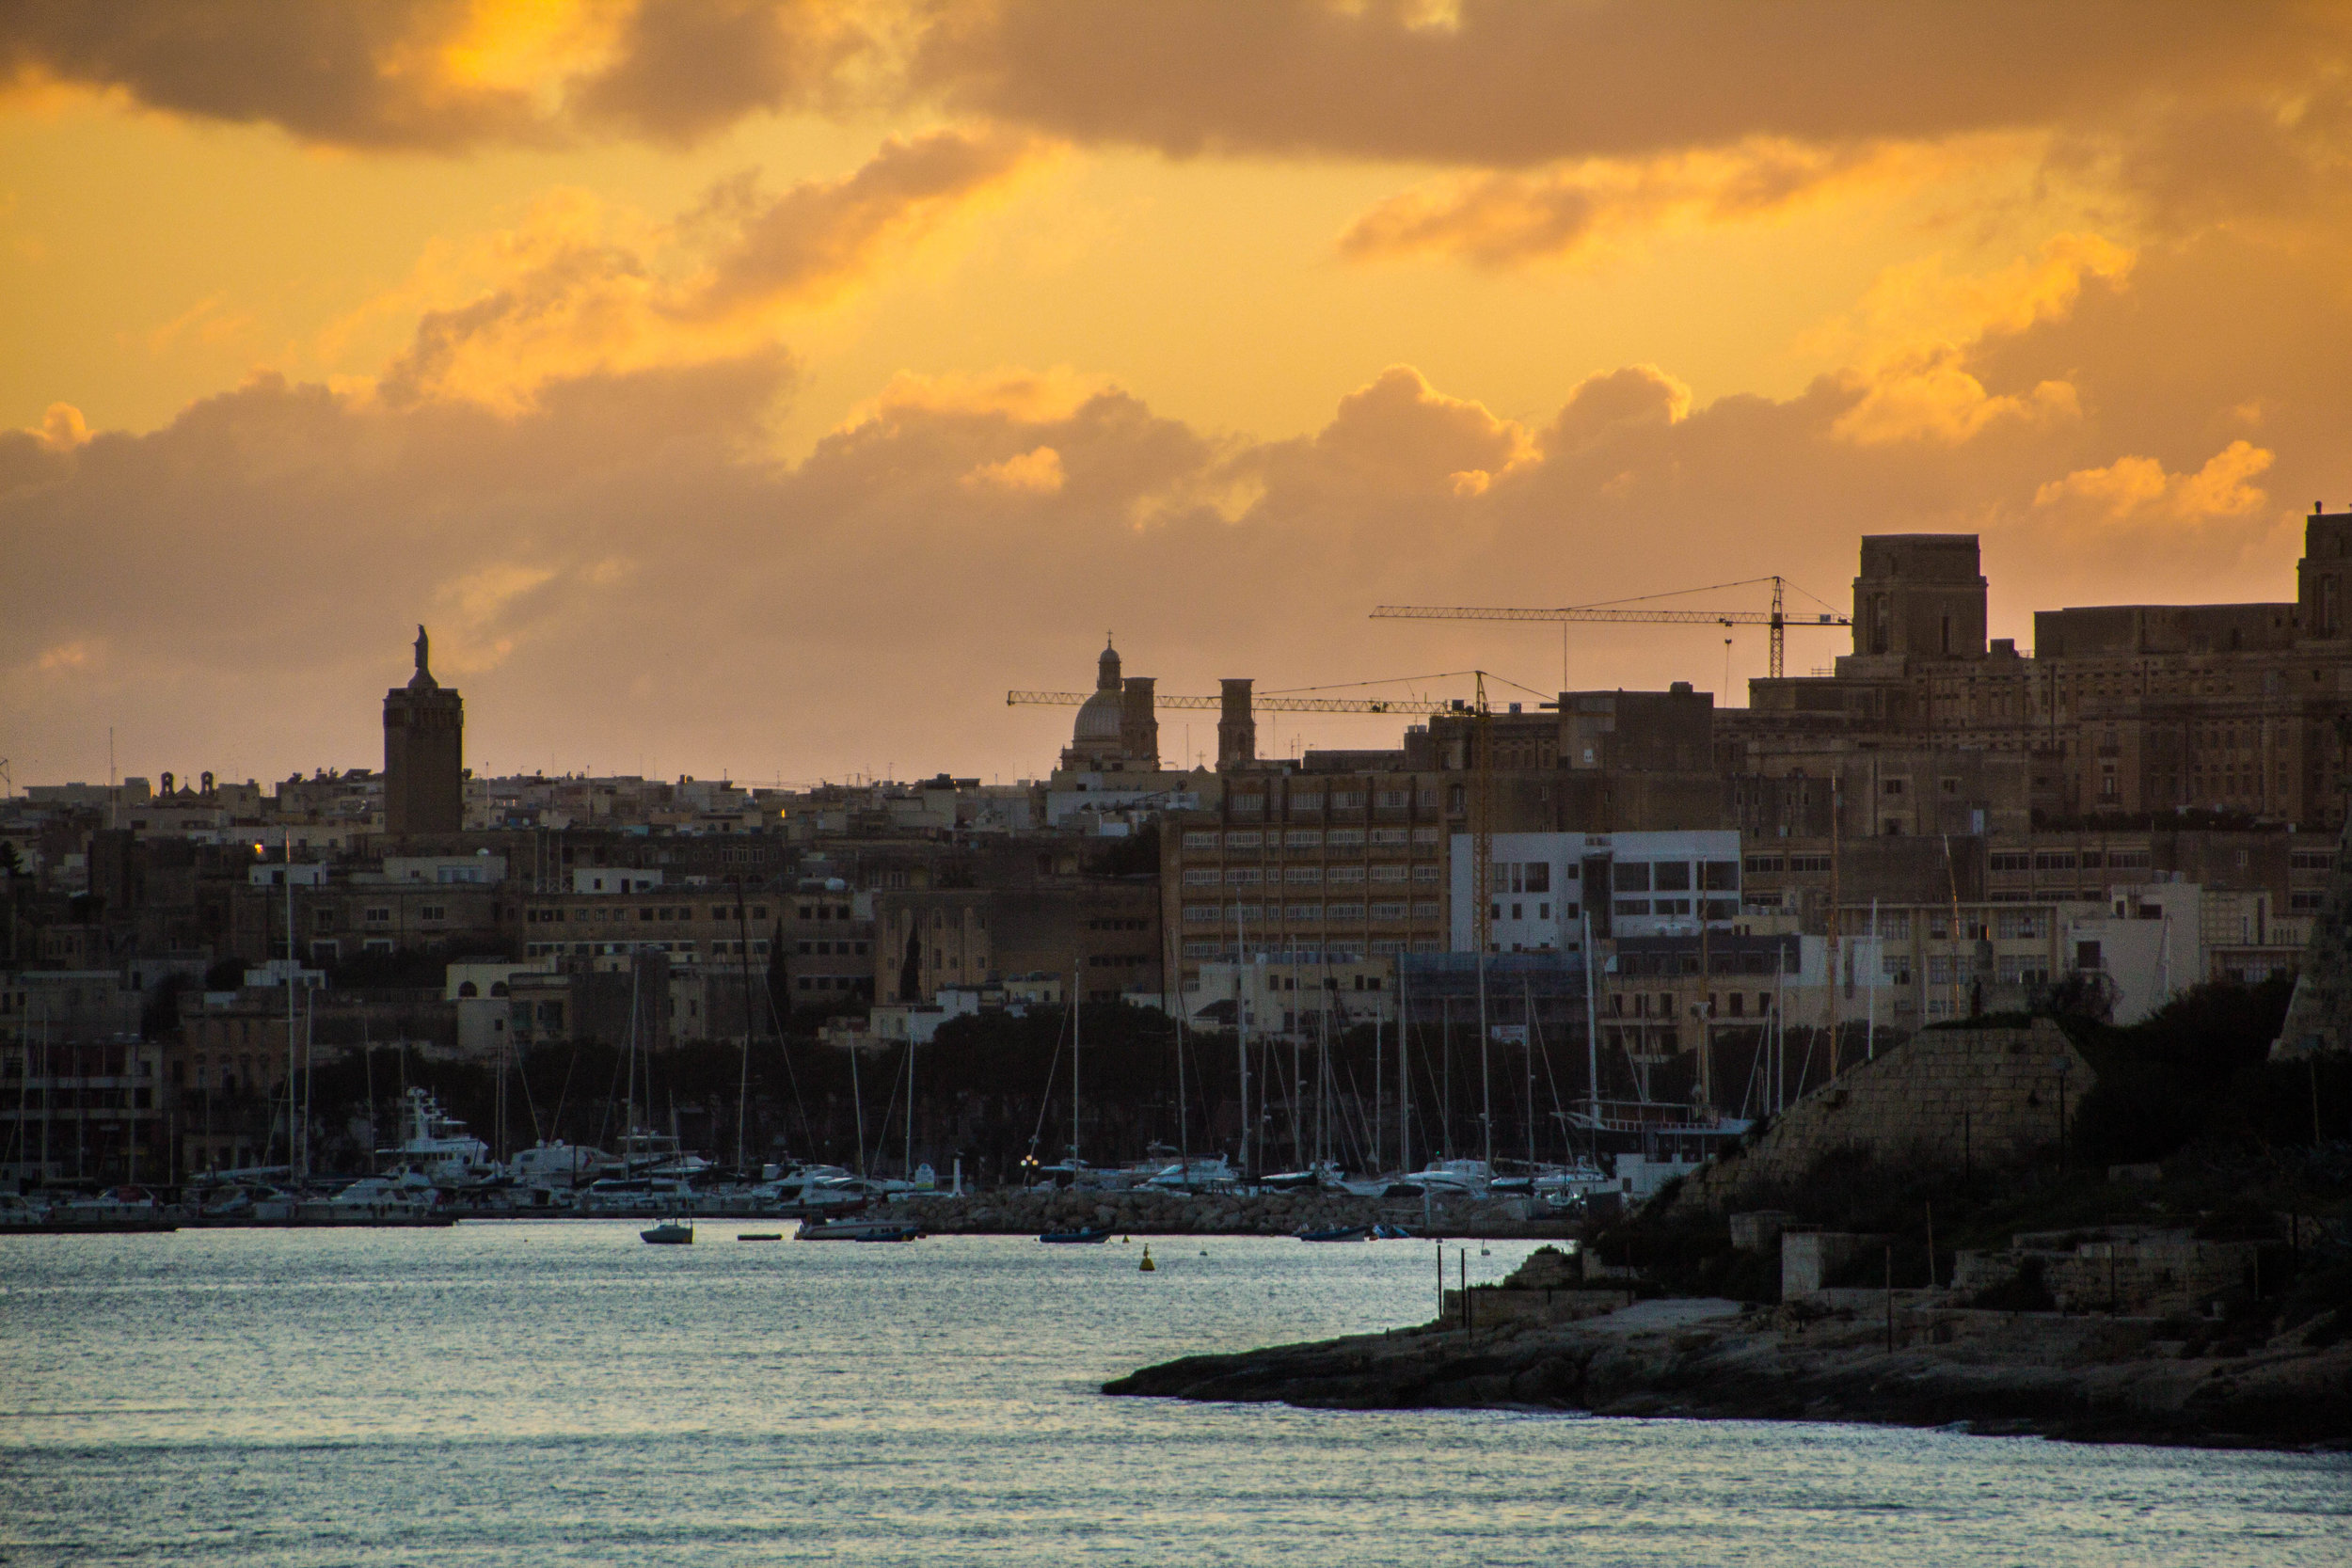 valletta-sliema-sunset-photography-32.jpg